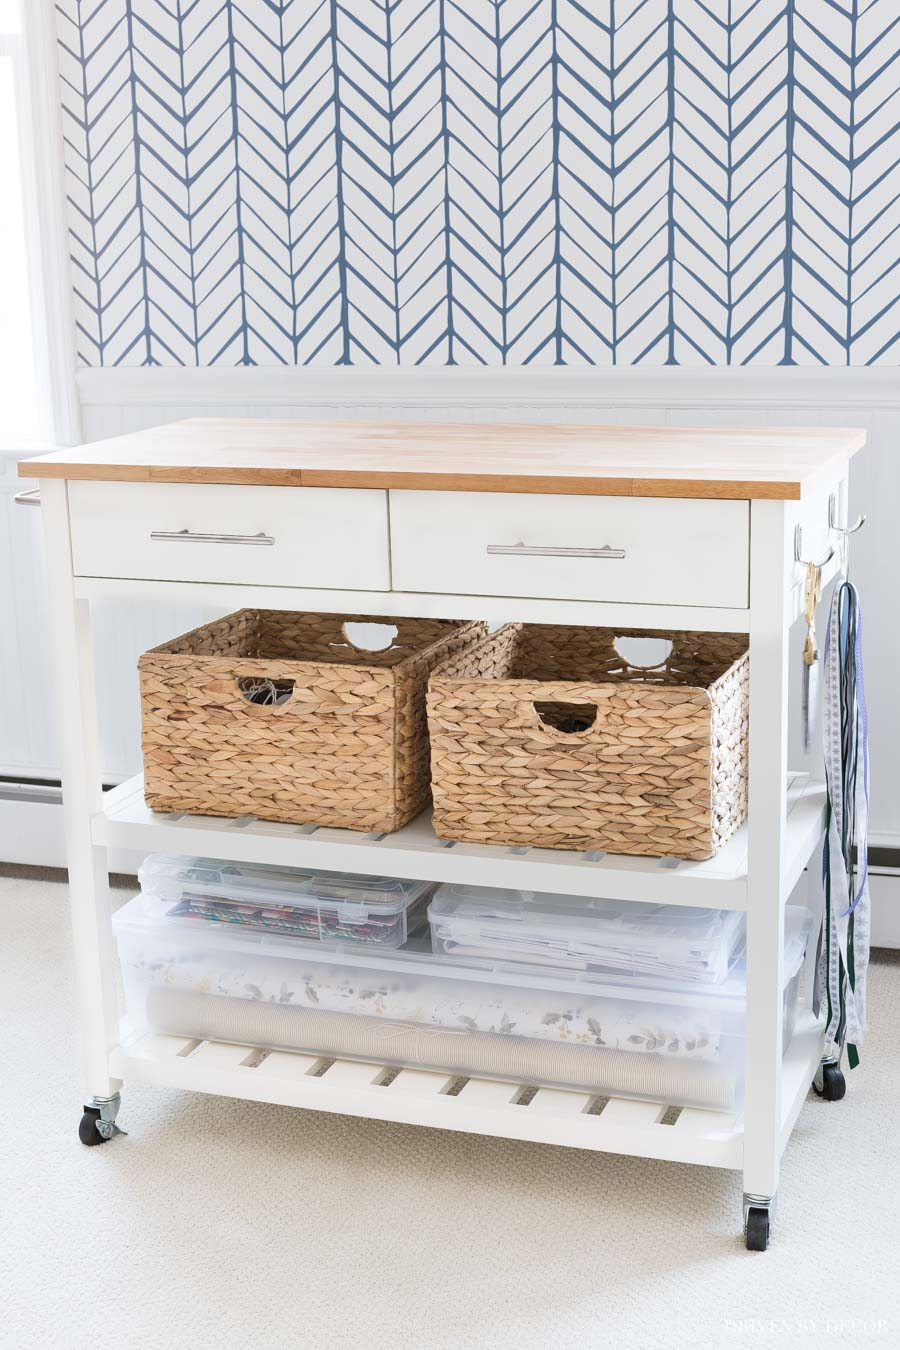 Love how she turned this kitchen cart into a DIY gift wrapping station! There's a place for everything!